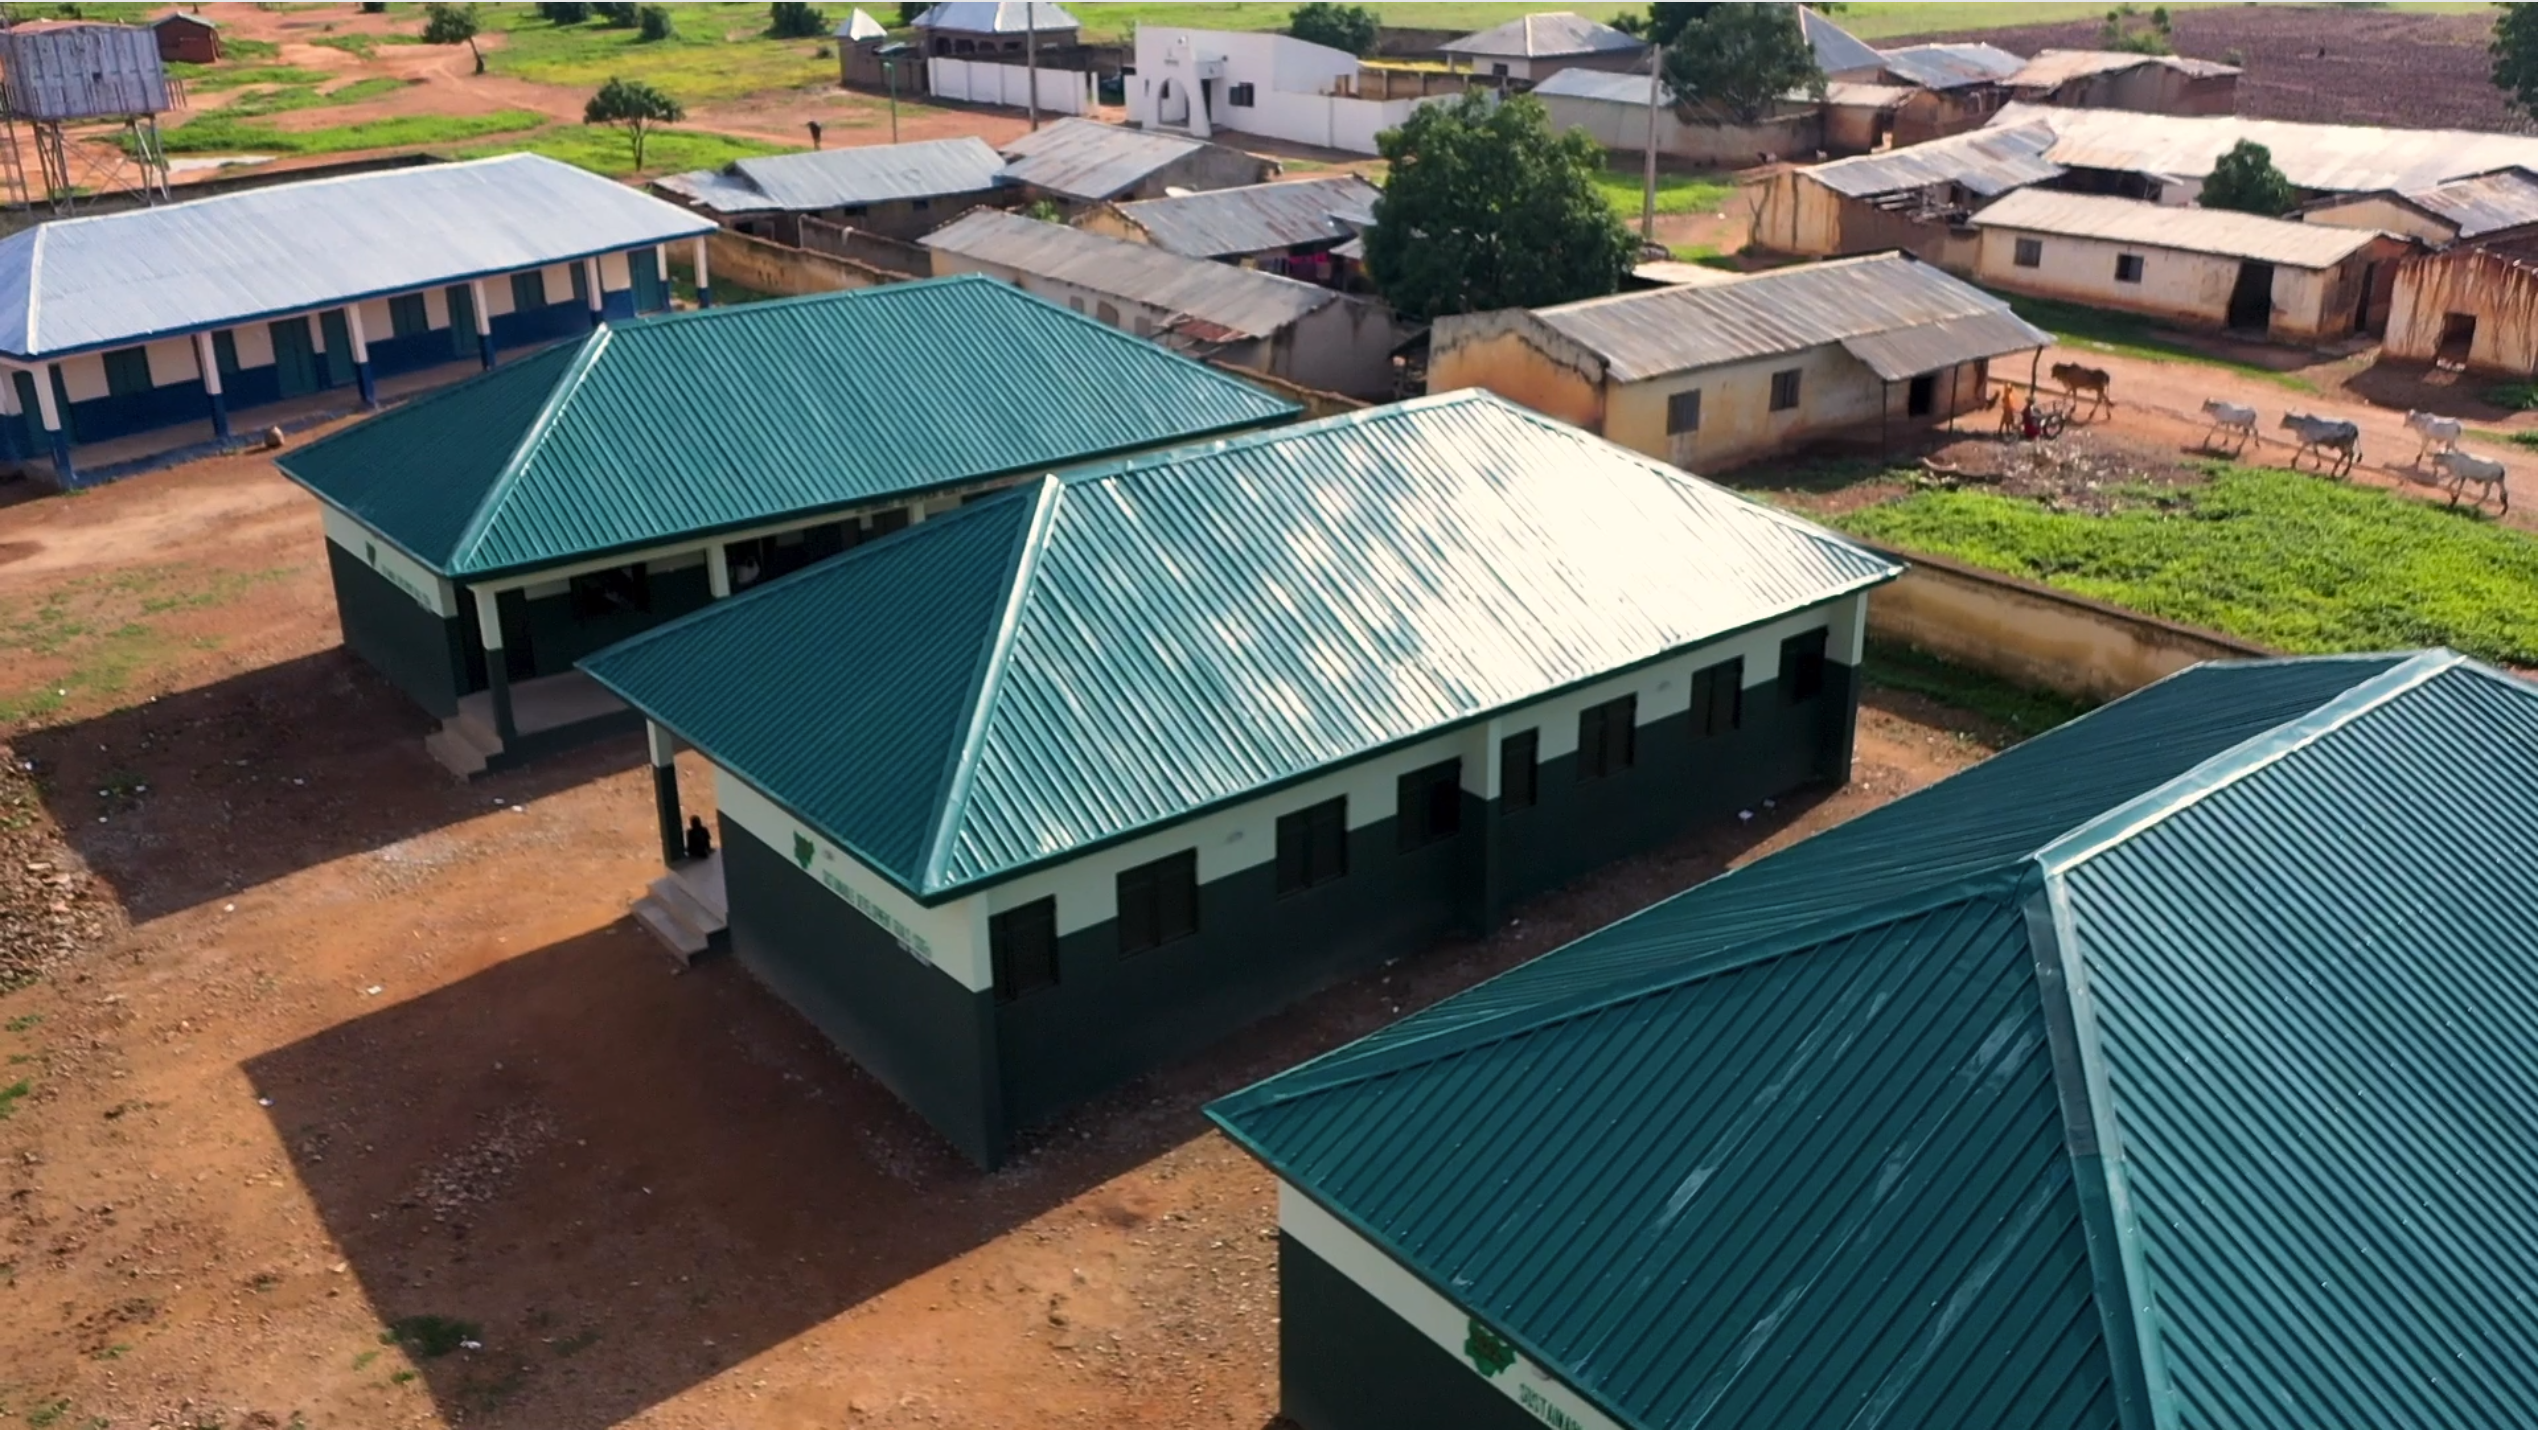 How to Reduce Nigeria's Out-of-School Children: The Success Story of Kebbi's Maga Primary School